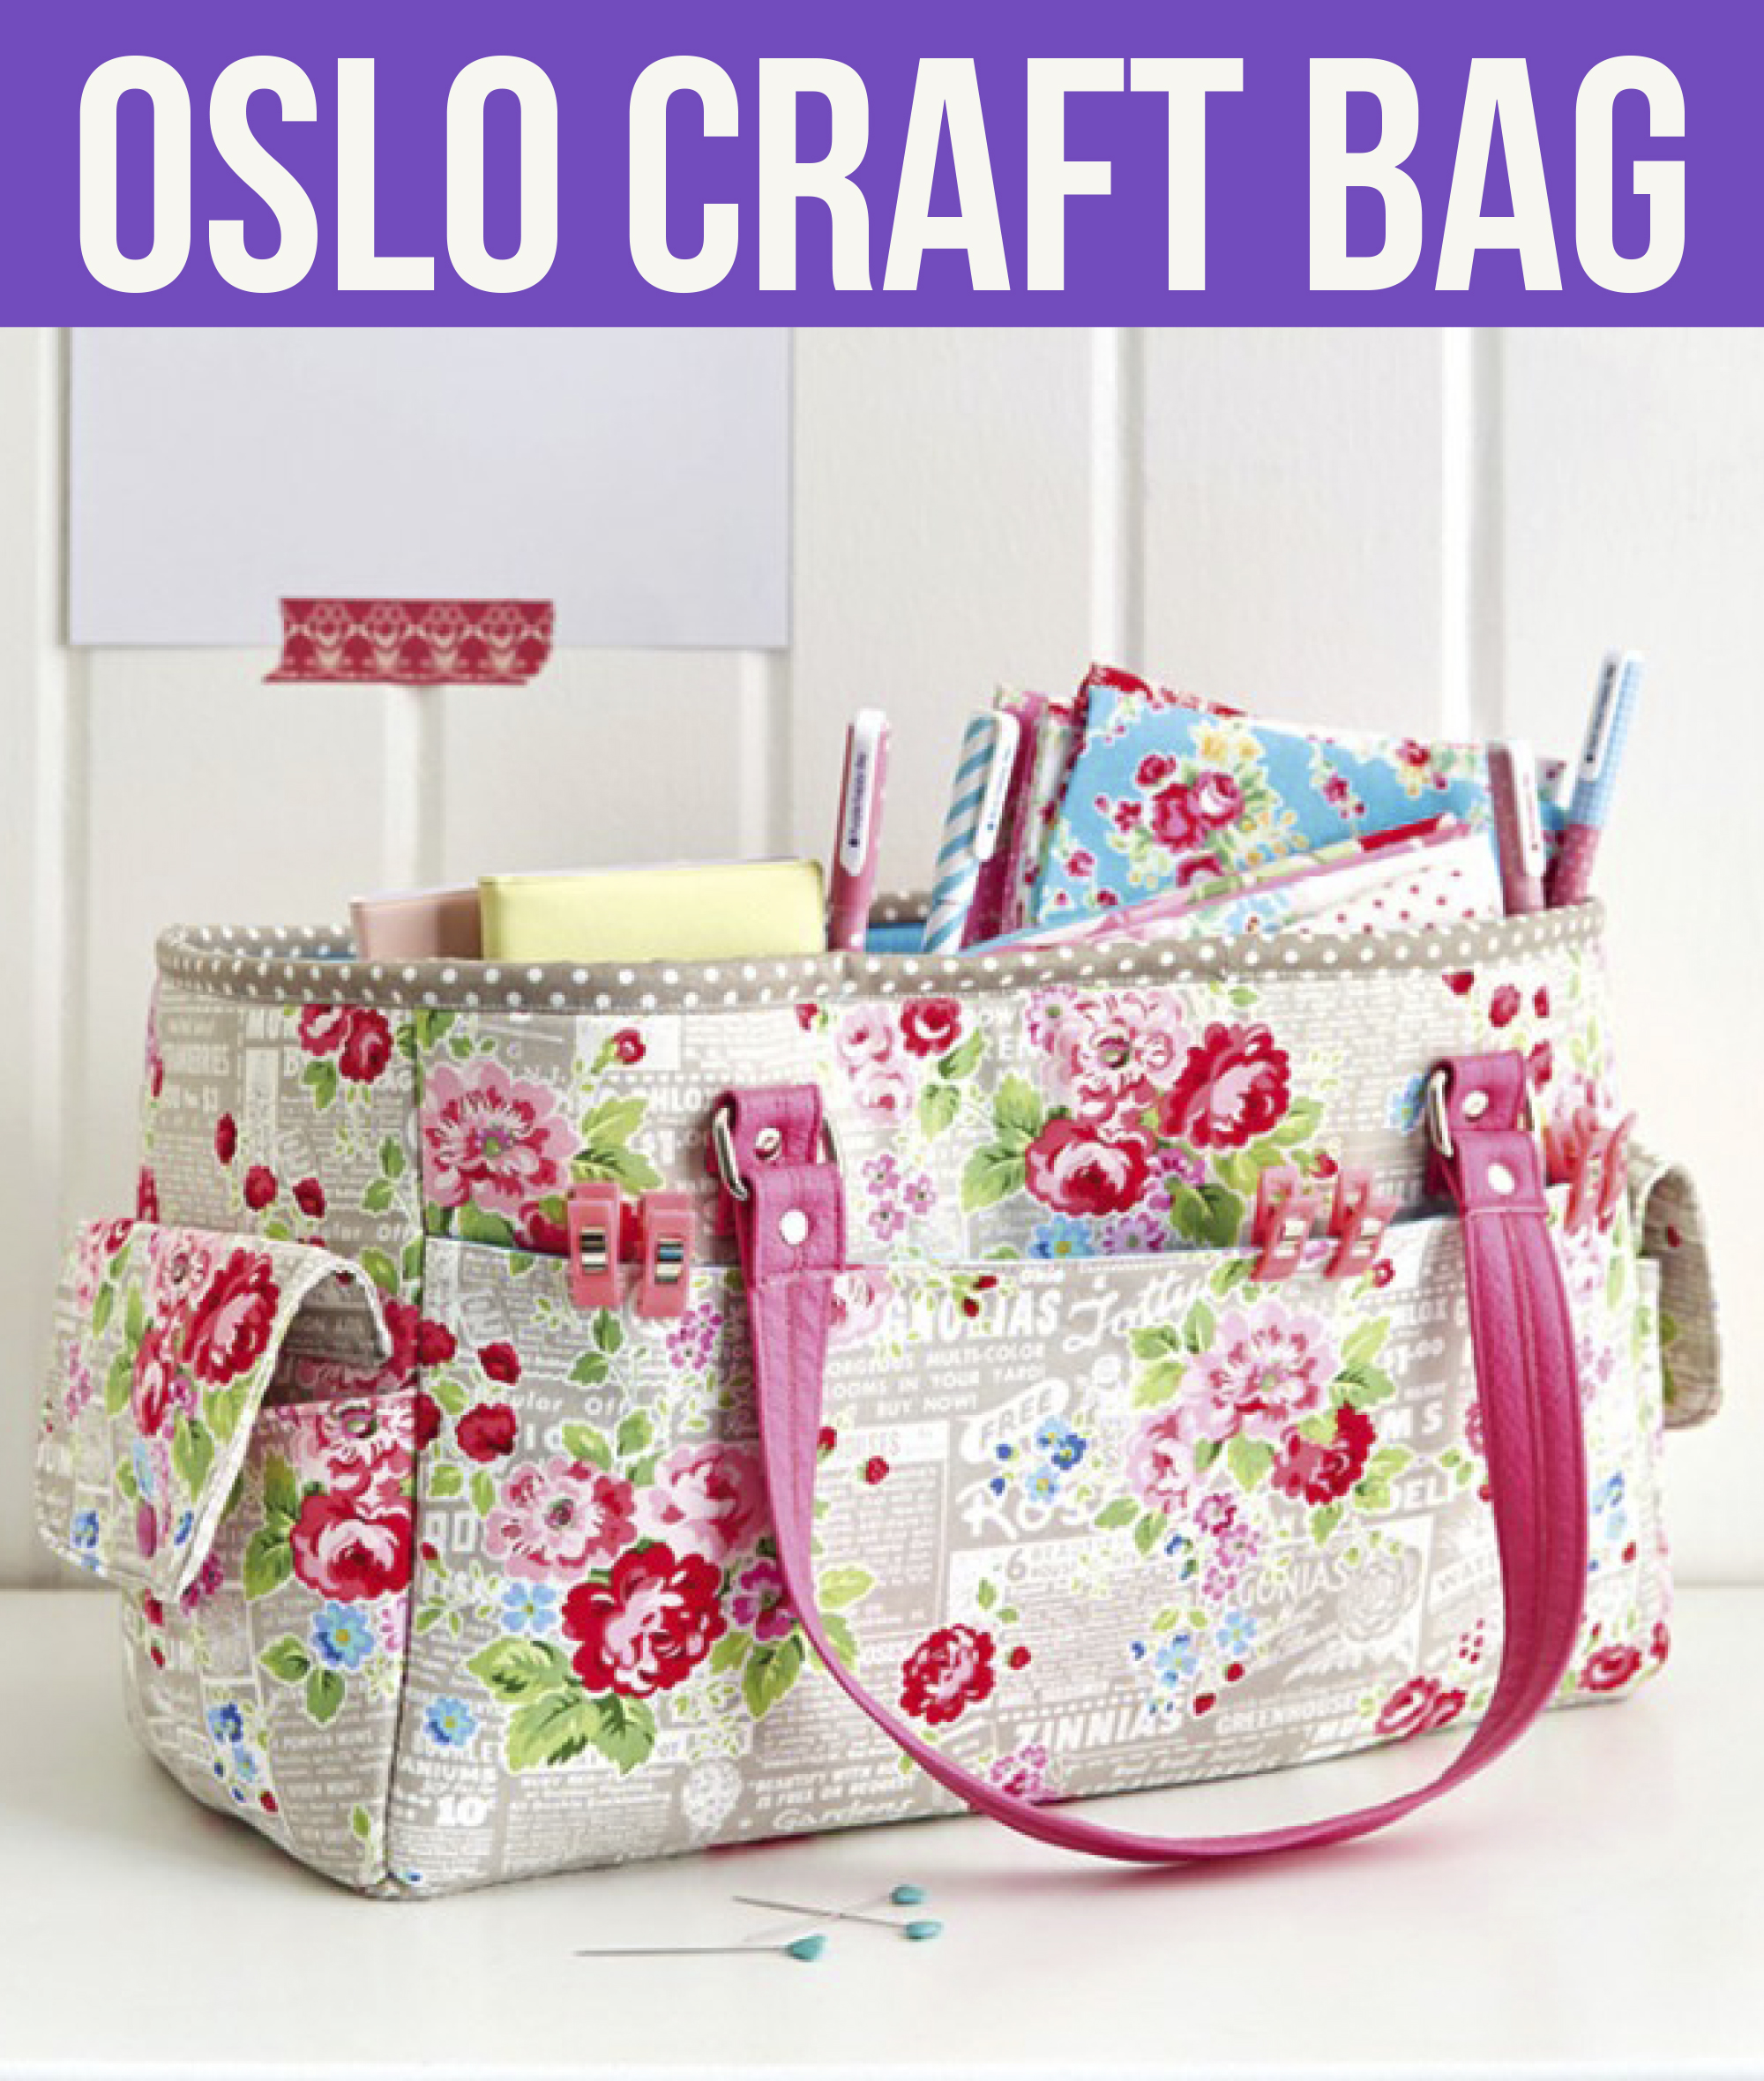 photo regarding Handbag Patterns Free Printable named Tutorials - Sew Sweetness